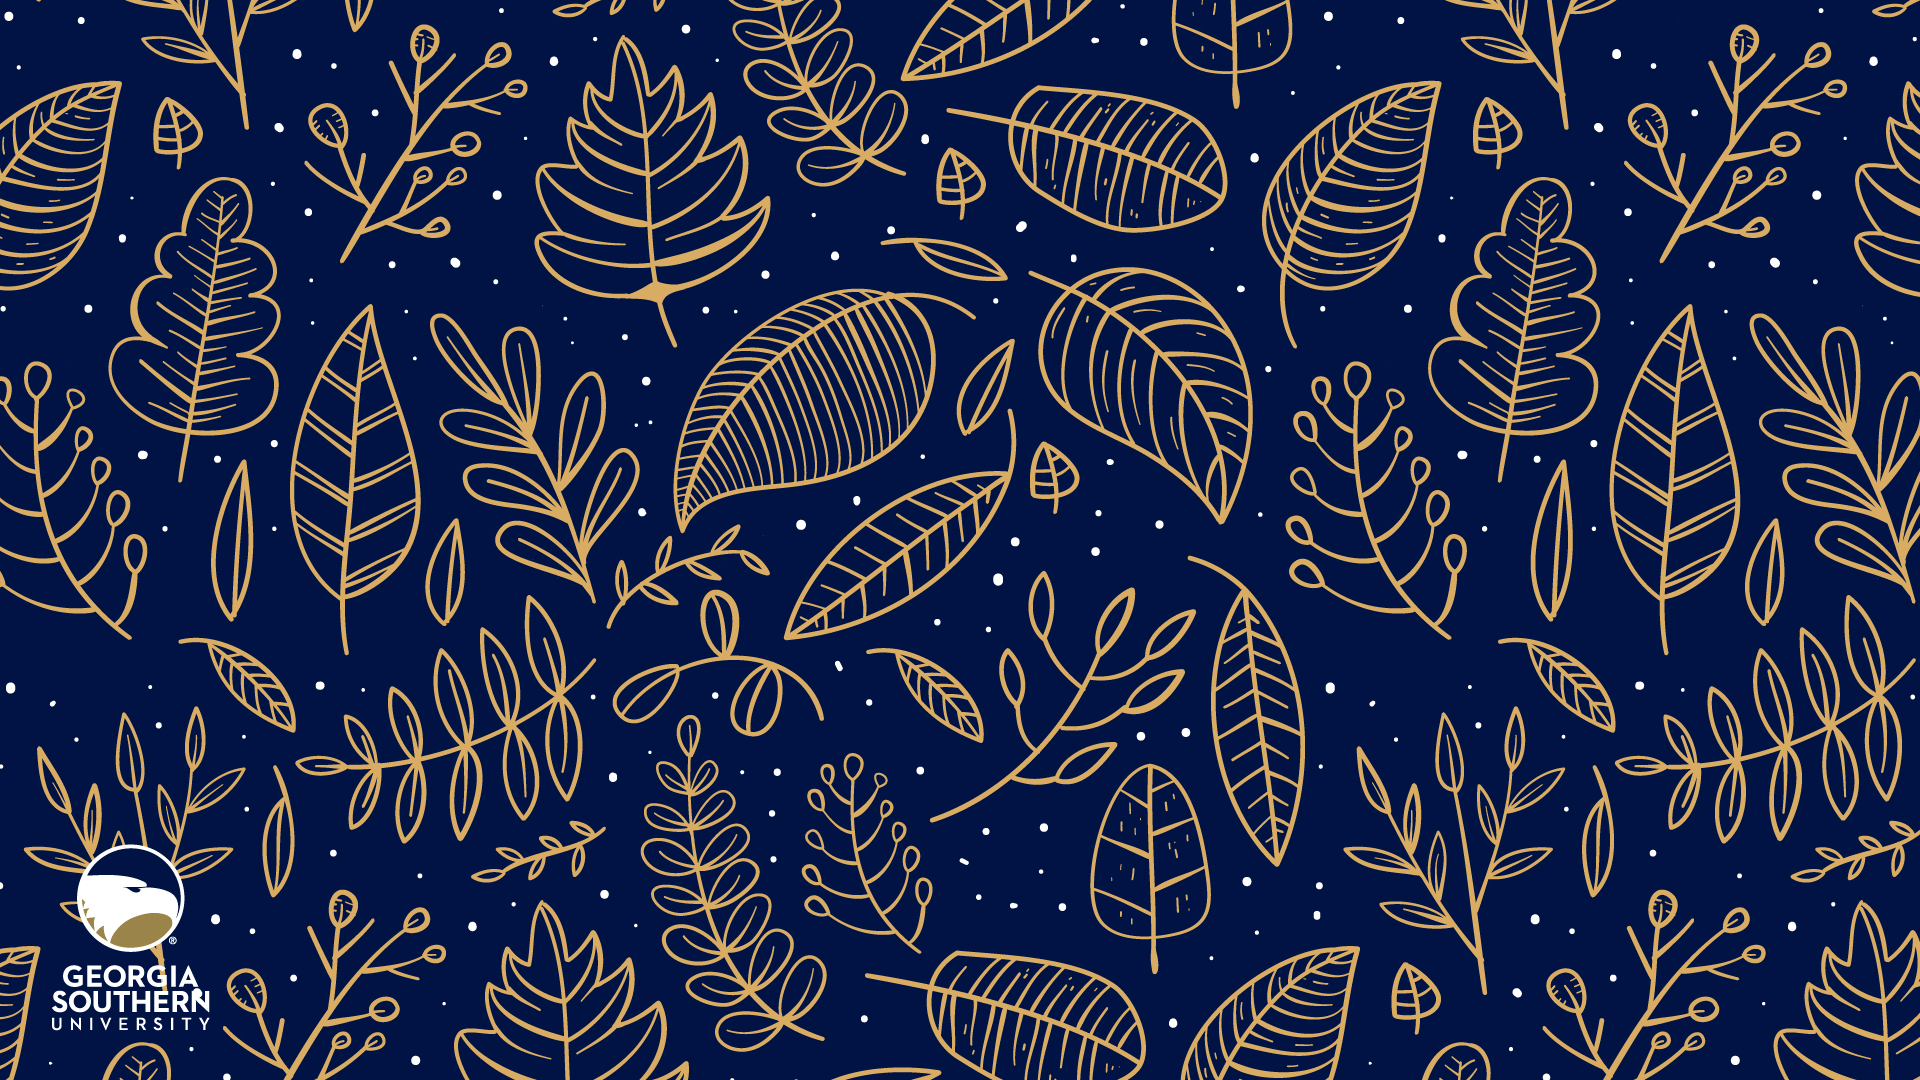 download a background of an autumn leaves pattern